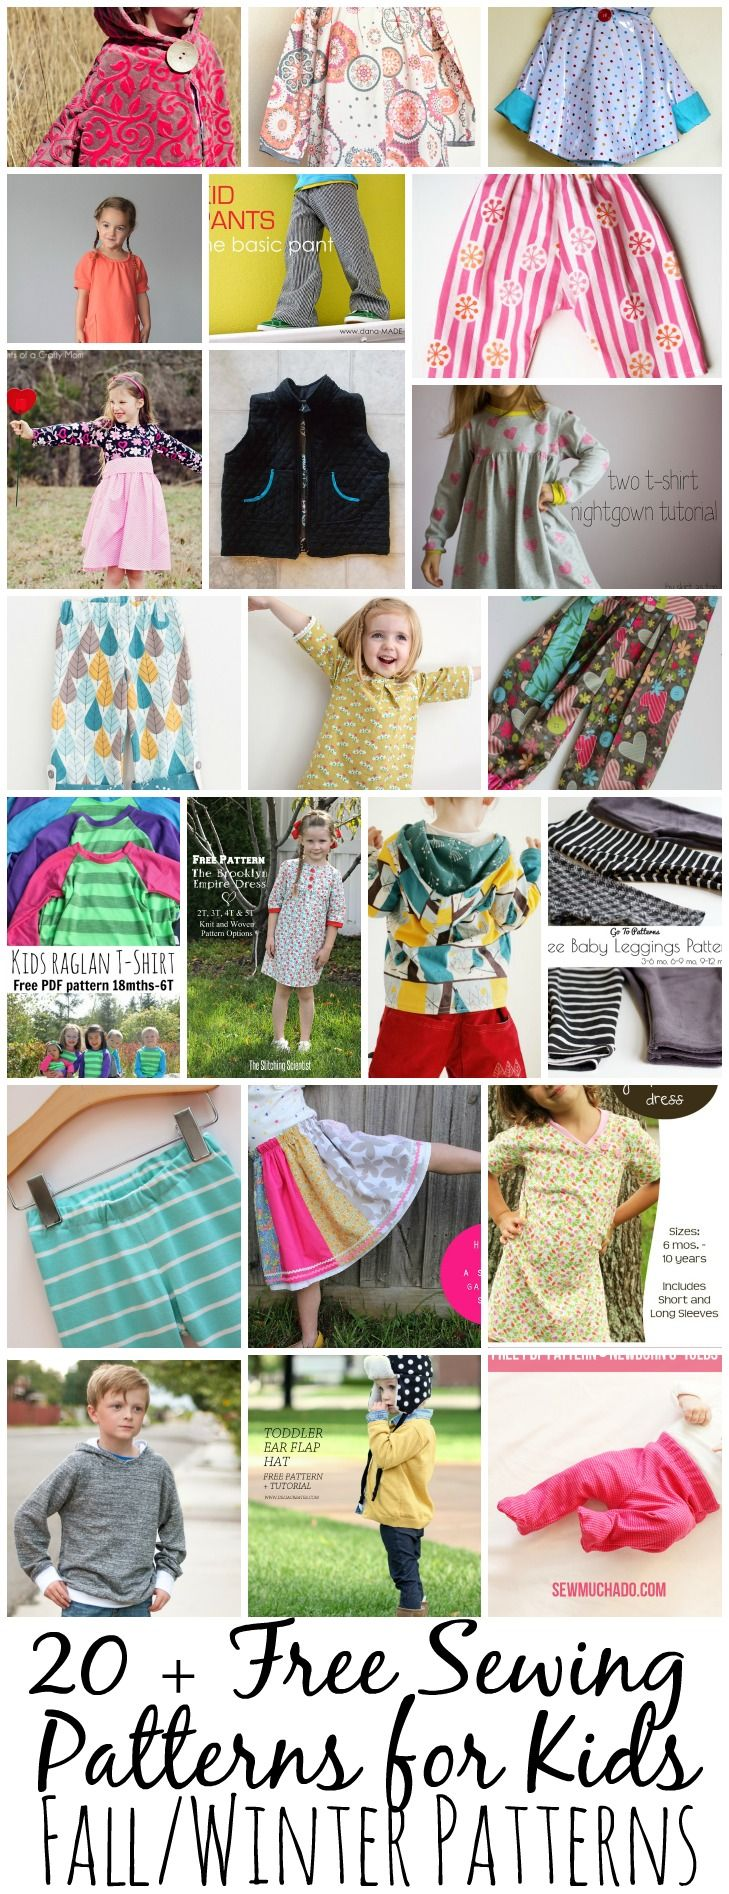 More than 20 free sewing patterns for kids winter inspired more than 20 free sewing patterns for kids winter inspired clothing free be inspired jeuxipadfo Gallery